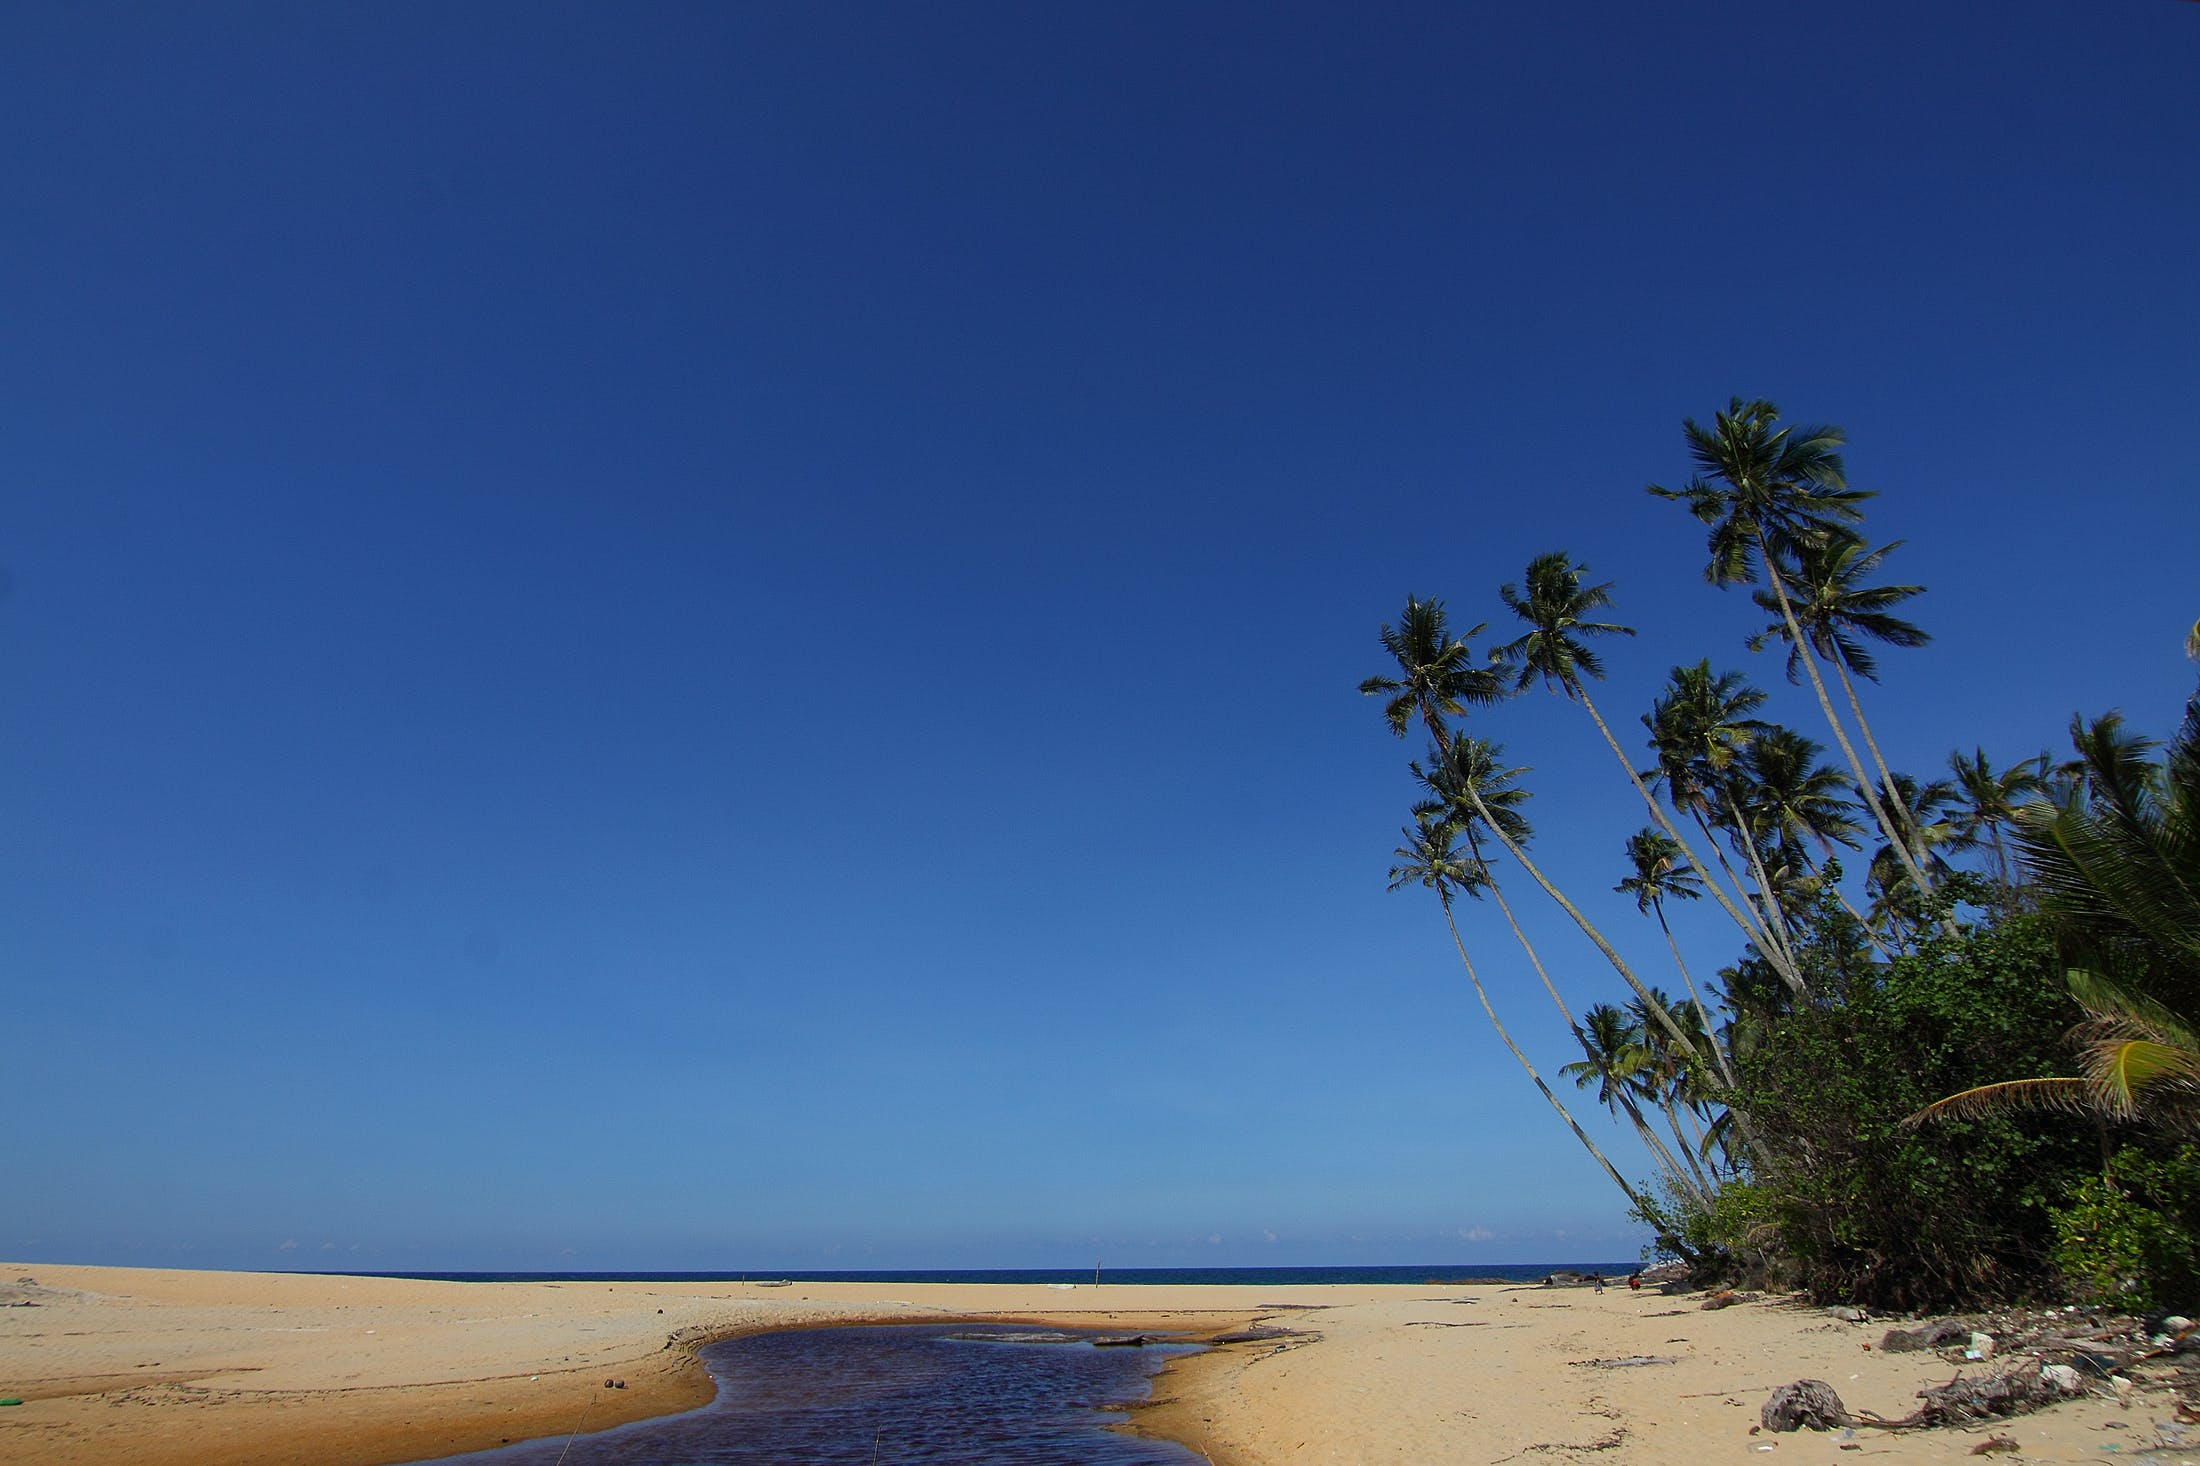 Brown Sandy Beach With Coconut Trees